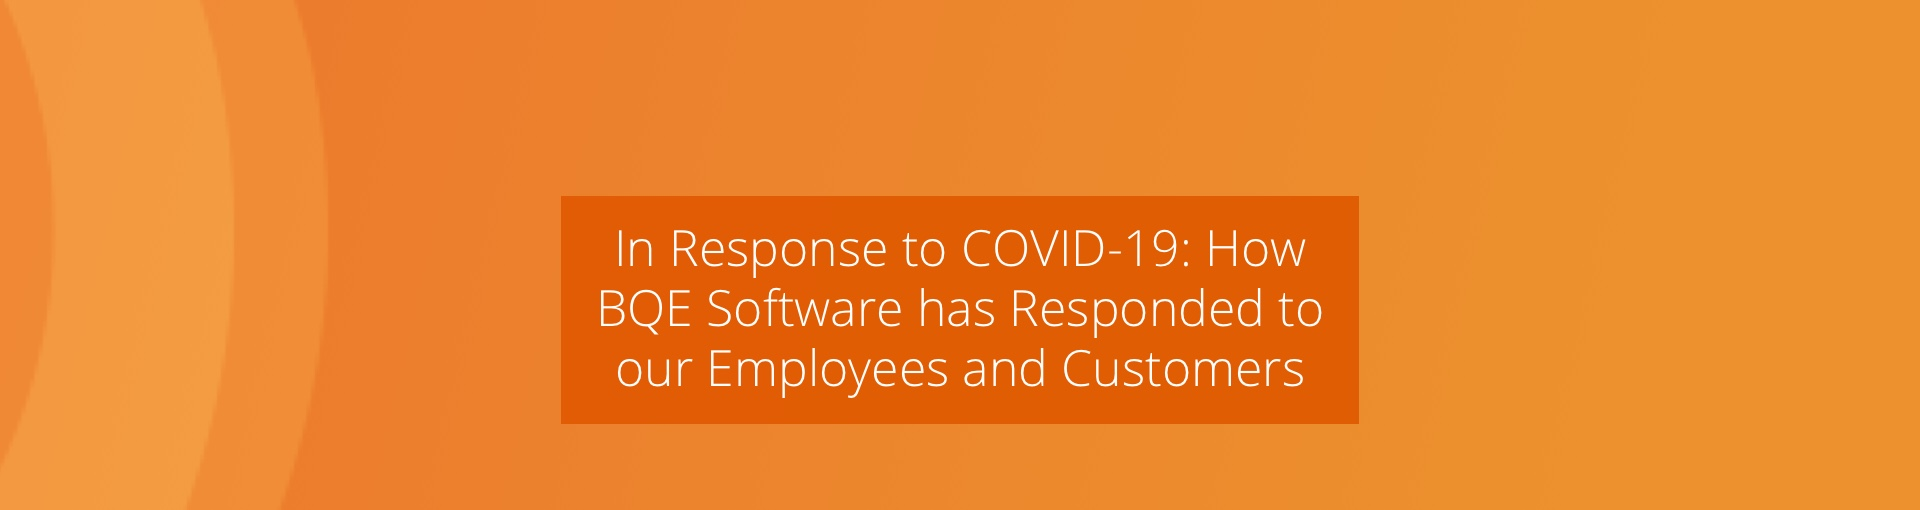 In Response to COVID-19: How BQE Software has Responded to our Employees and Customers